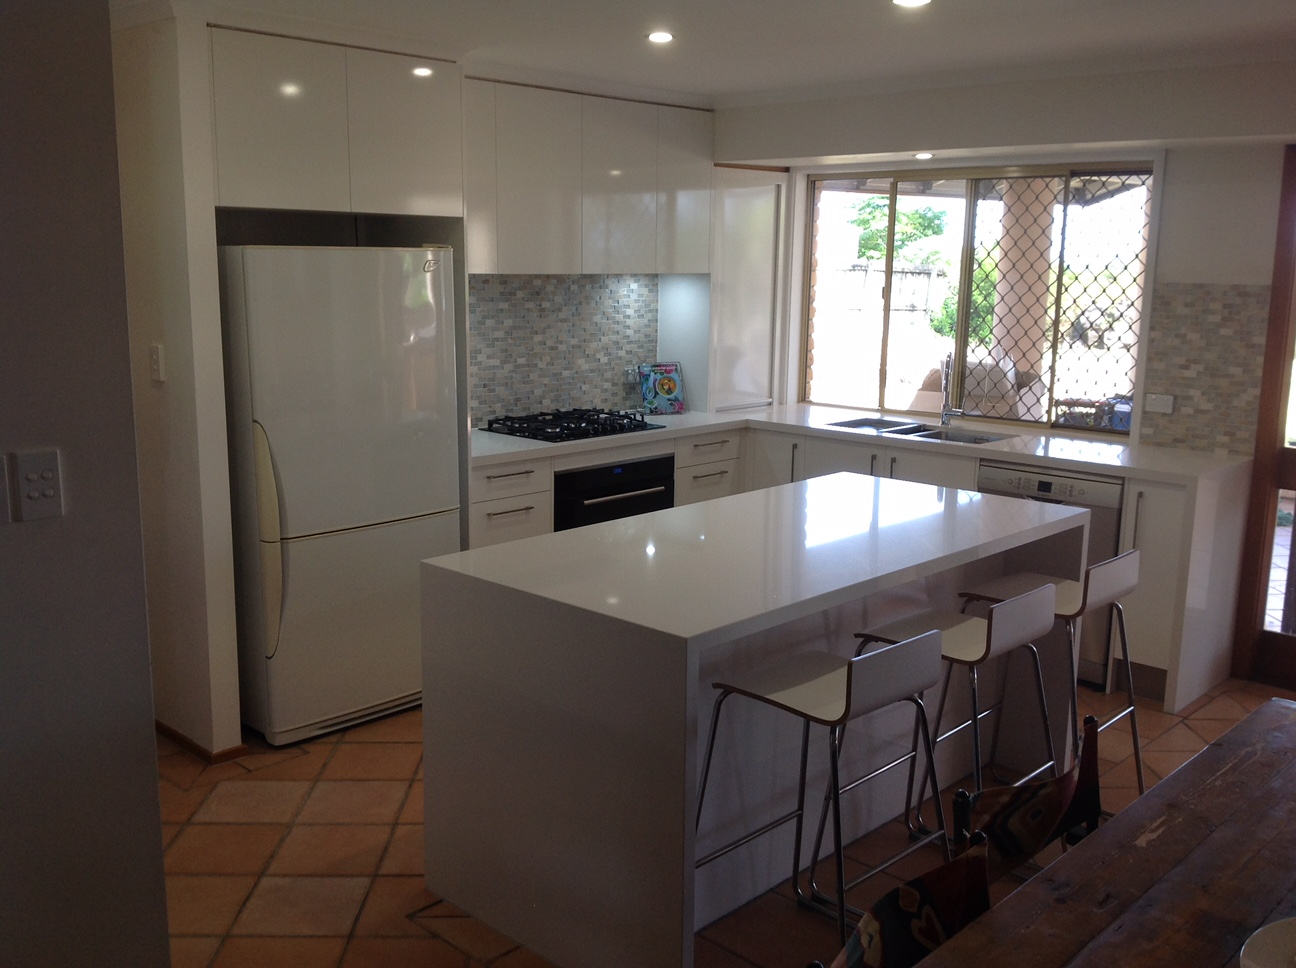 Kitchen Renovations - Gold Coast - Kitchen Brokers Queensland - Peter & Linda